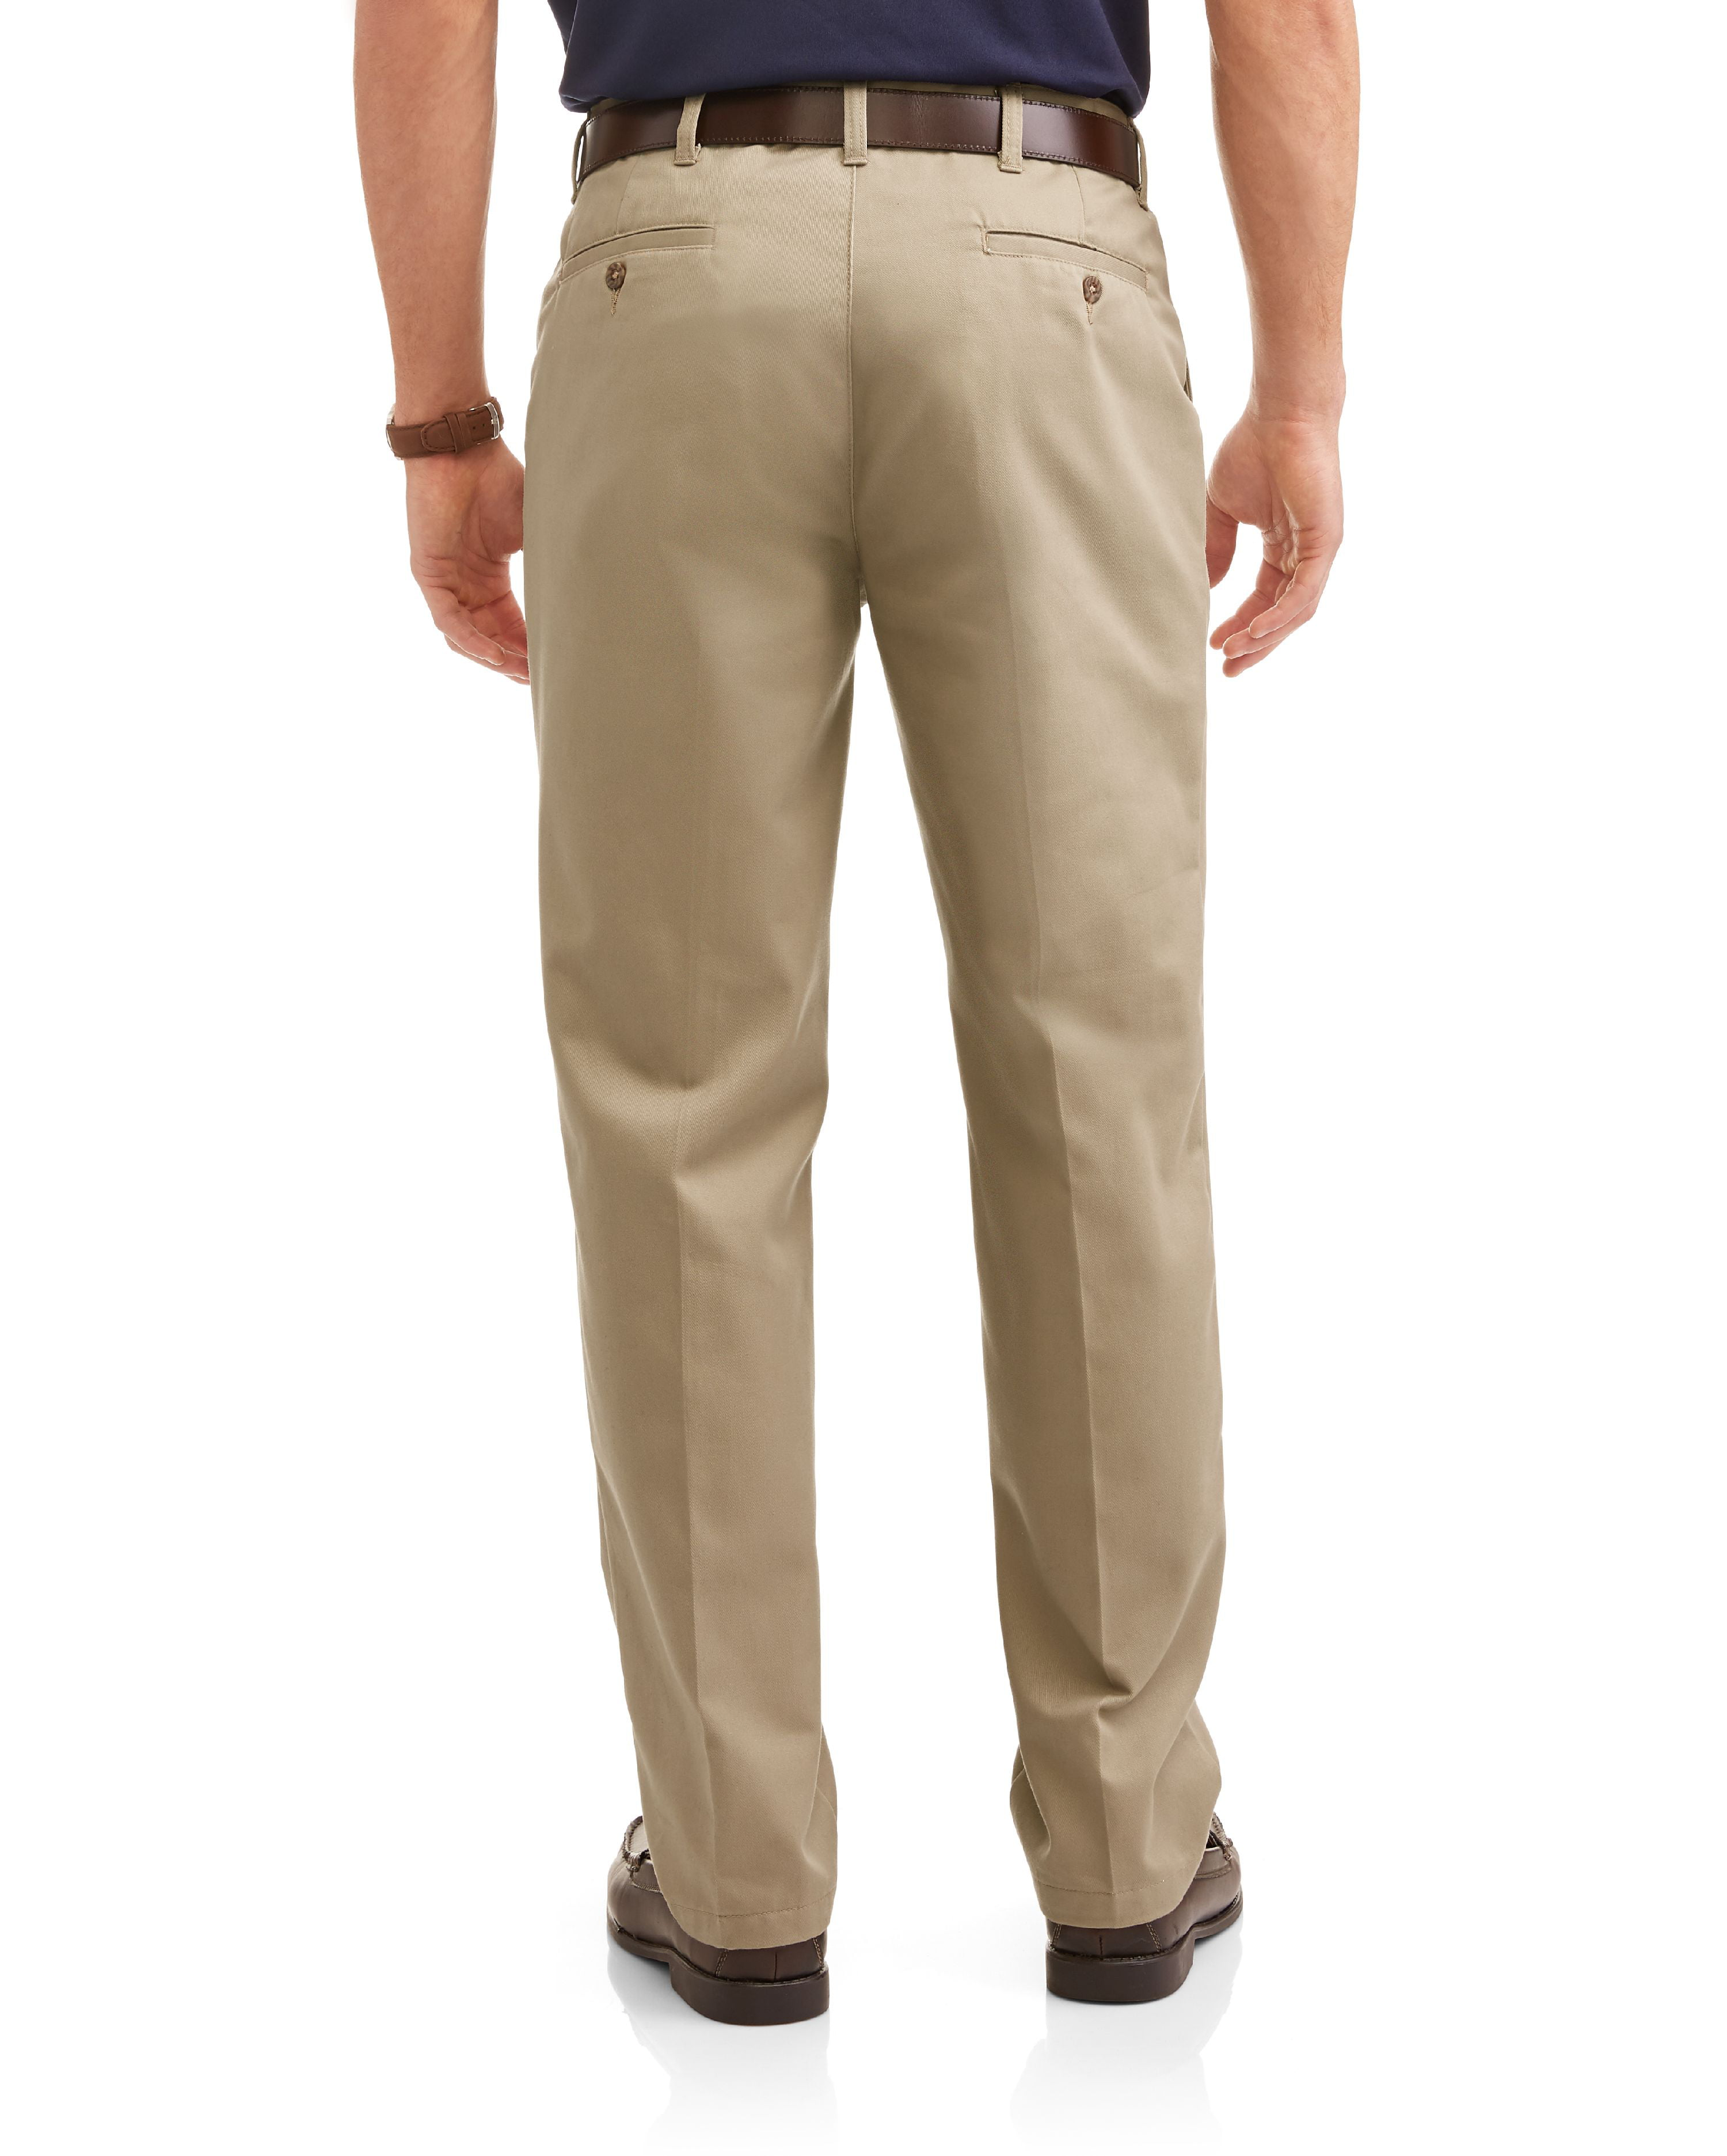 959bb641d79 George - George Men s Wrinkle Resistant Flat Front 100% Cotton Twill Pant  with Scotchgard - Walmart.com